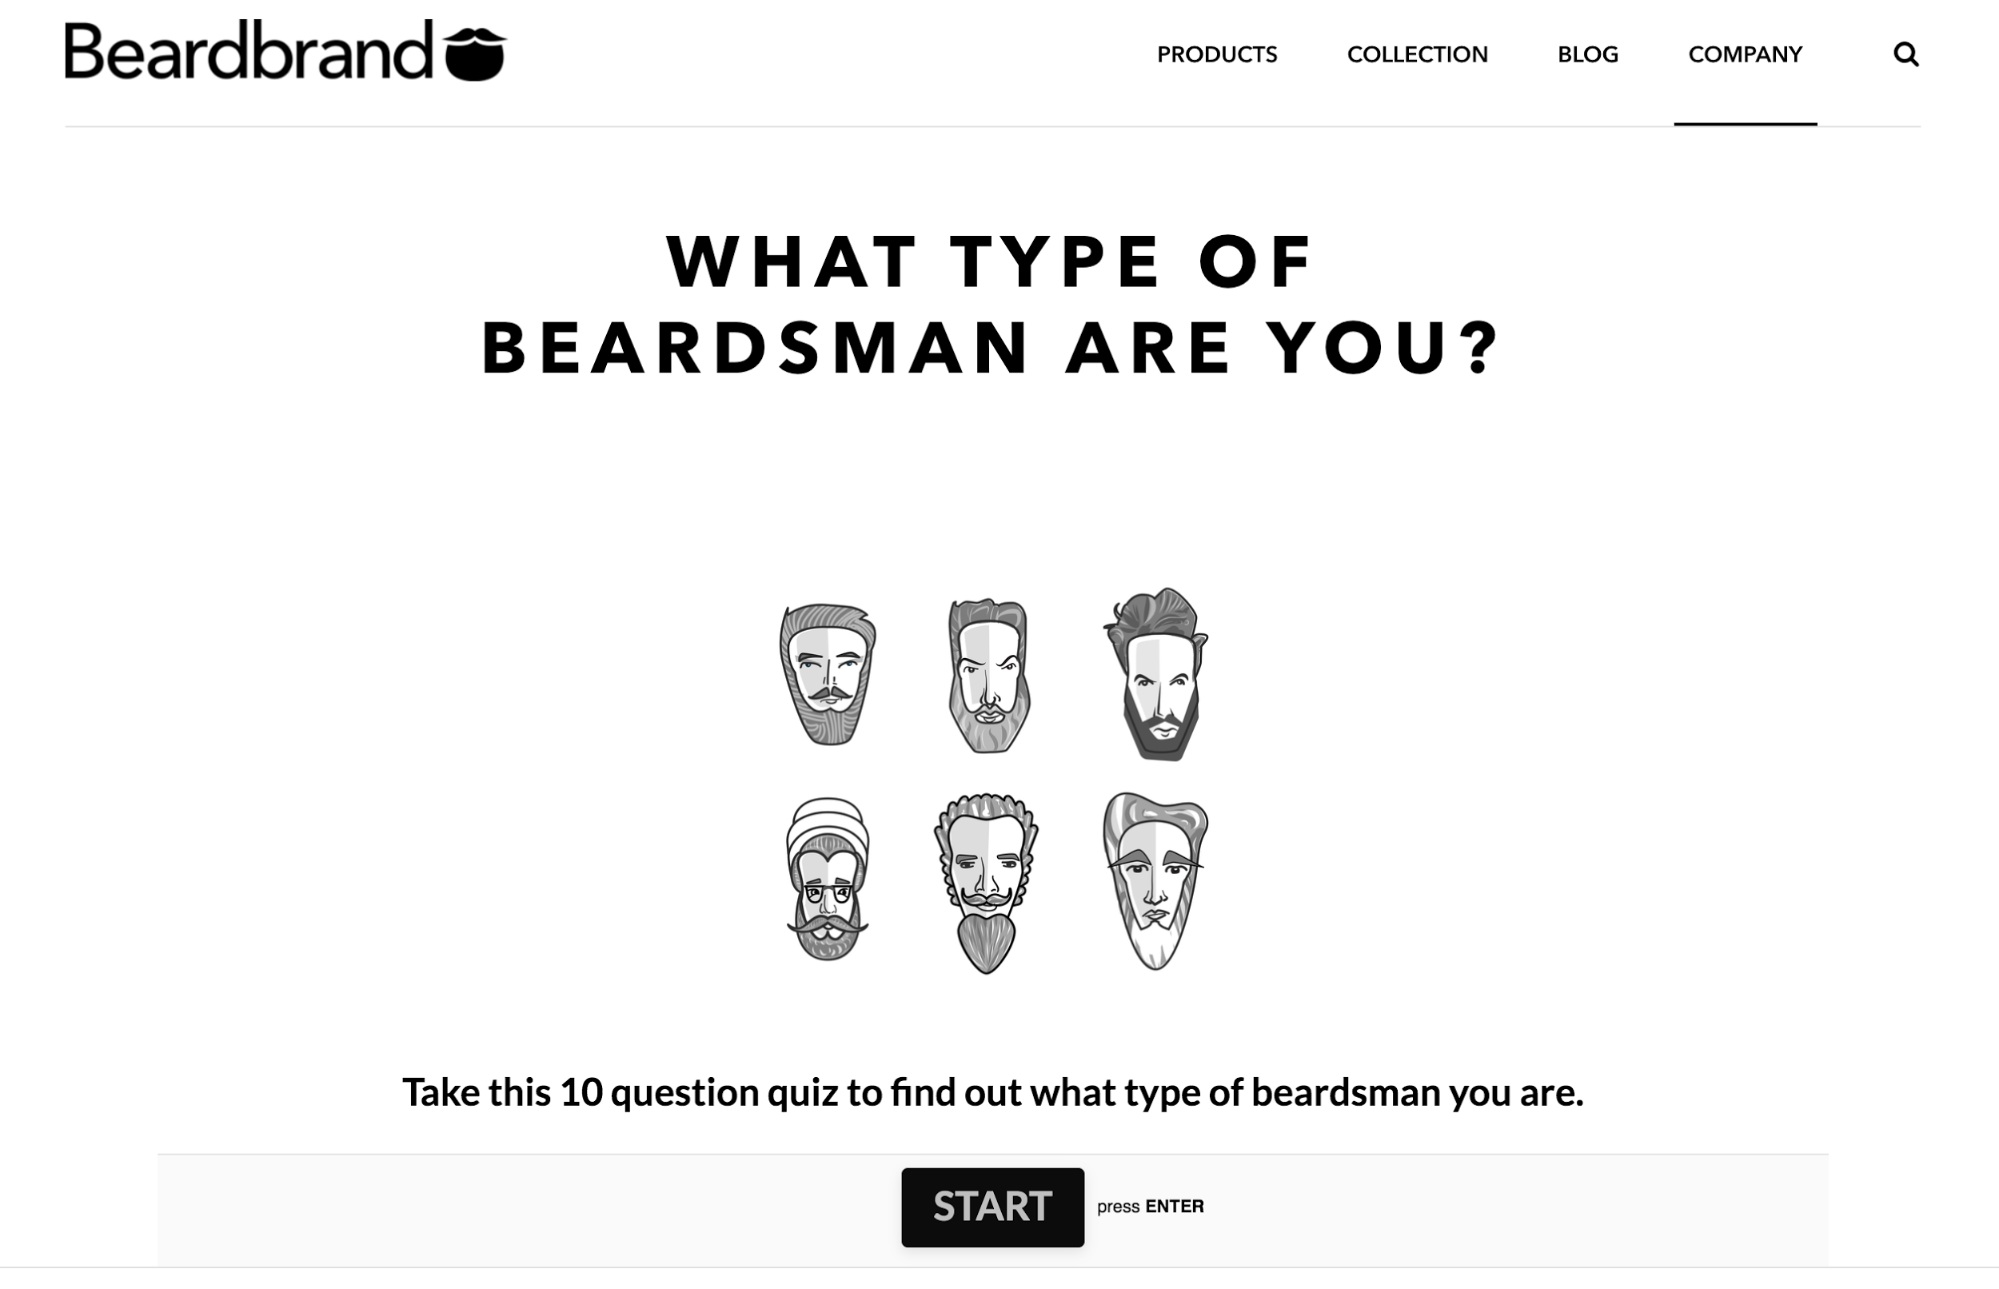 Screenshot showing a quiz page on beardbrand